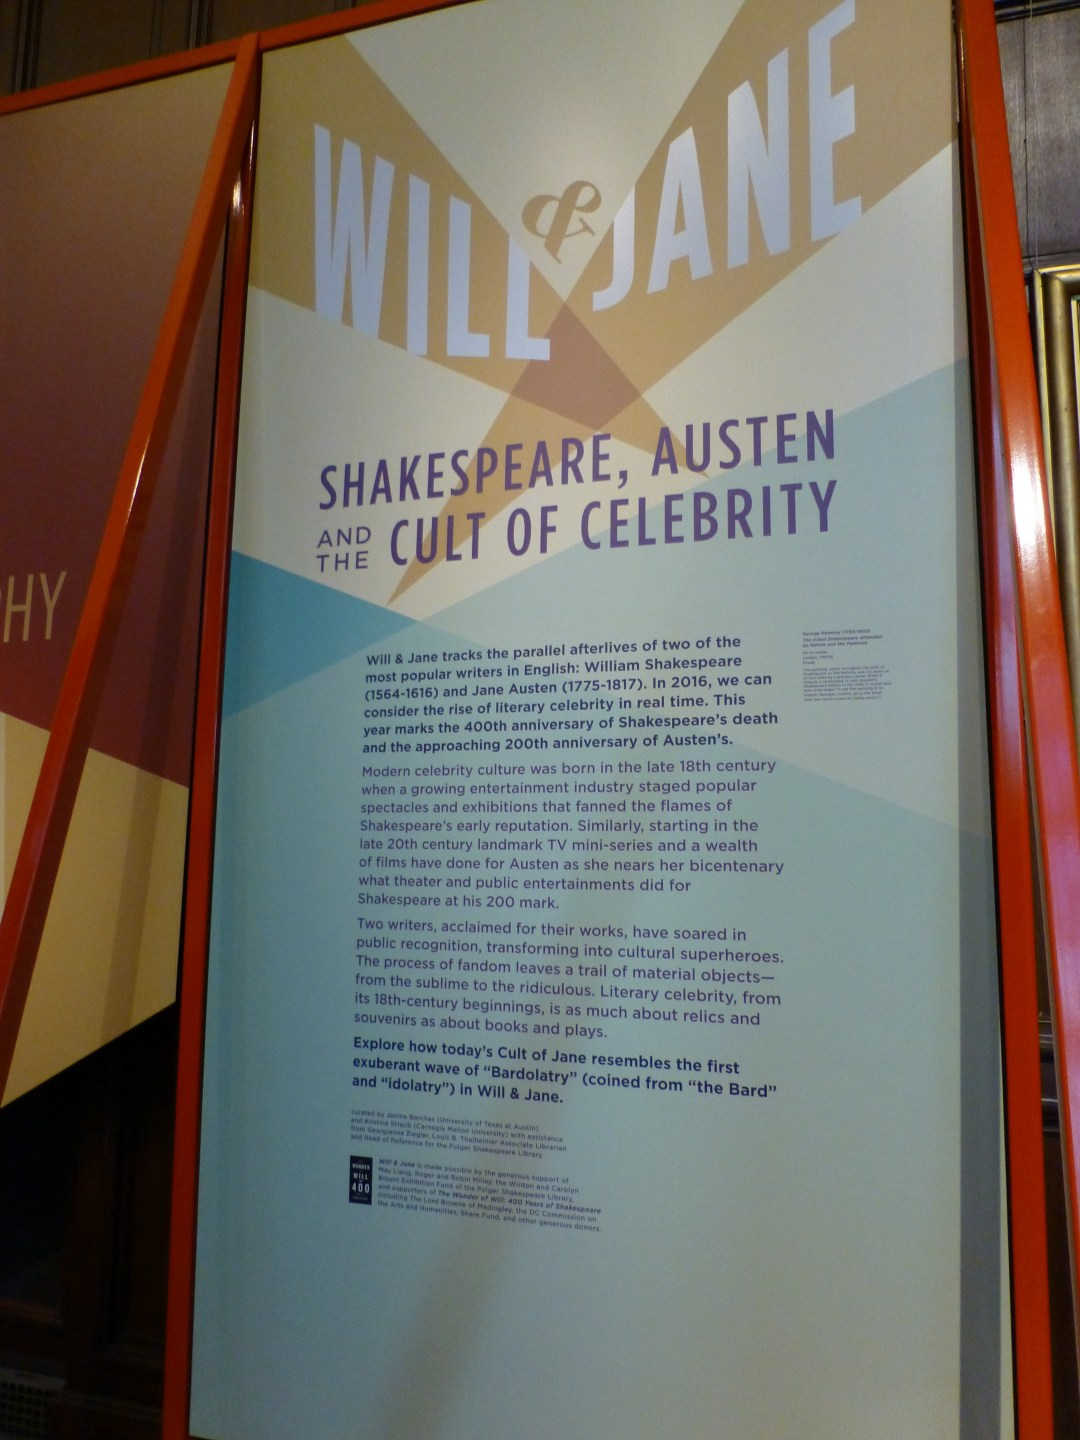 The Will & Jane exhibit shattered all prior attendance records at the Folger Shakespeare Library.